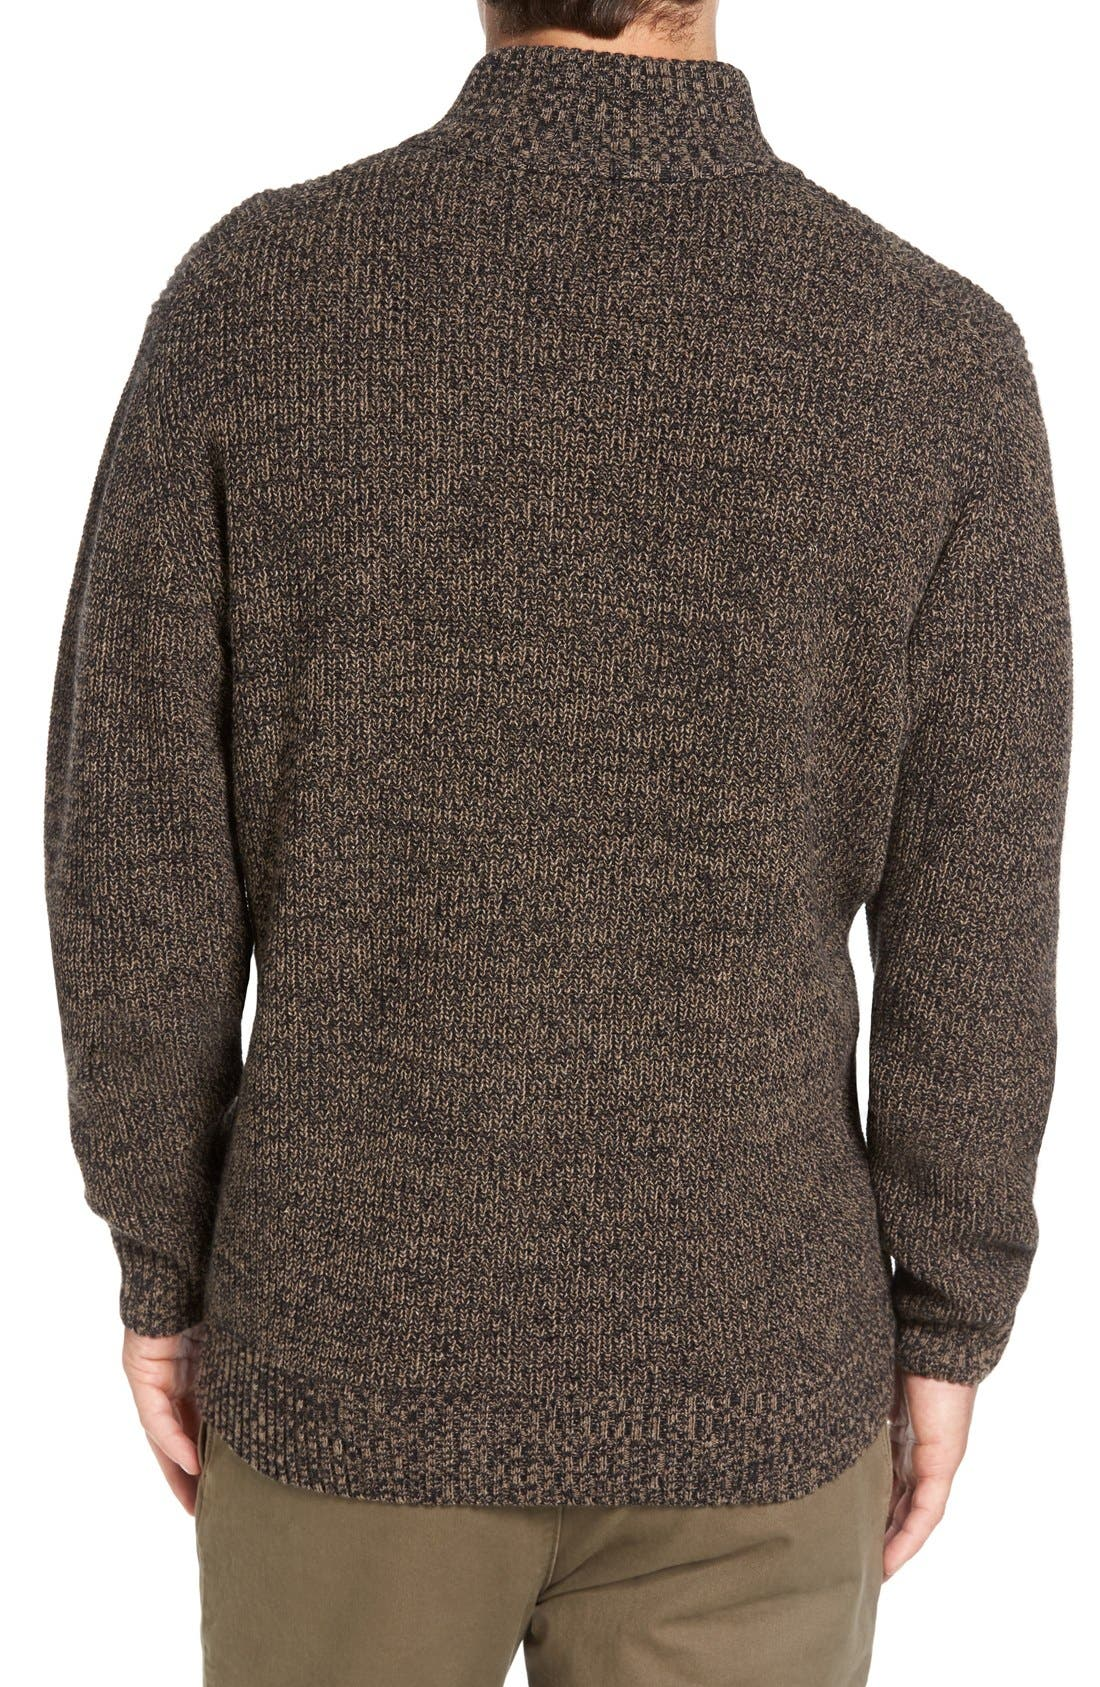 'Woodglen' Herringbone Knit Lambswool Quarter Zip Sweater,                             Alternate thumbnail 2, color,                             200